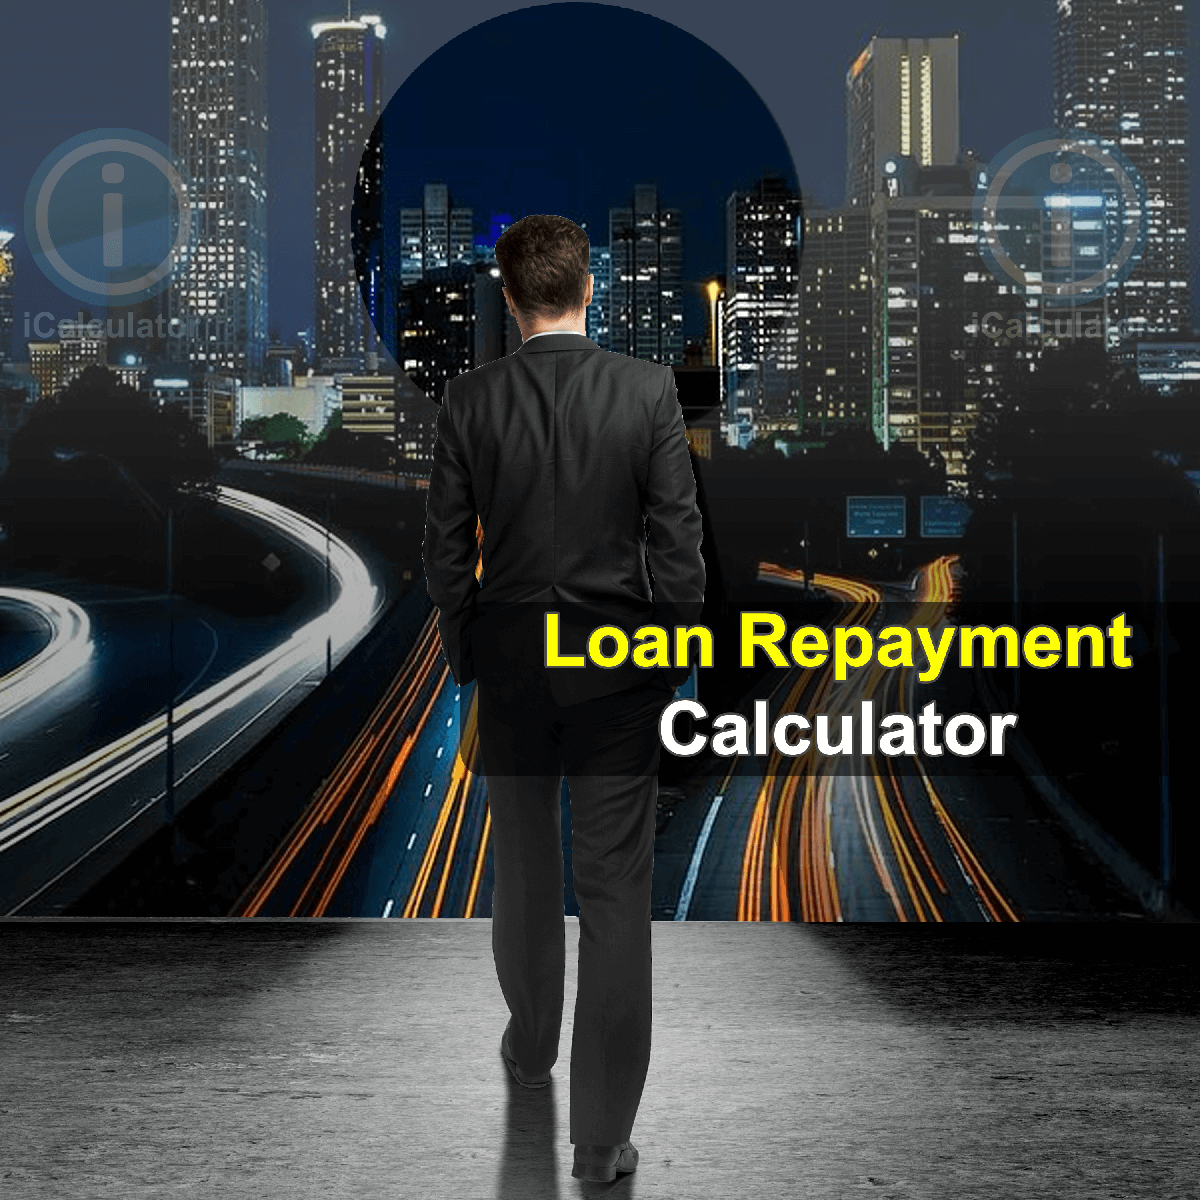 Annual Loan Repayment Calculator. This image provides details of how to calculate annual loan repayments using a calculator and notepad. By using the Amortization Schedule formula, the Annual Loan Repayment Calculator provides a true calculation of the monthly repayments and the amount of interest from borrowing or investing using amortization formula